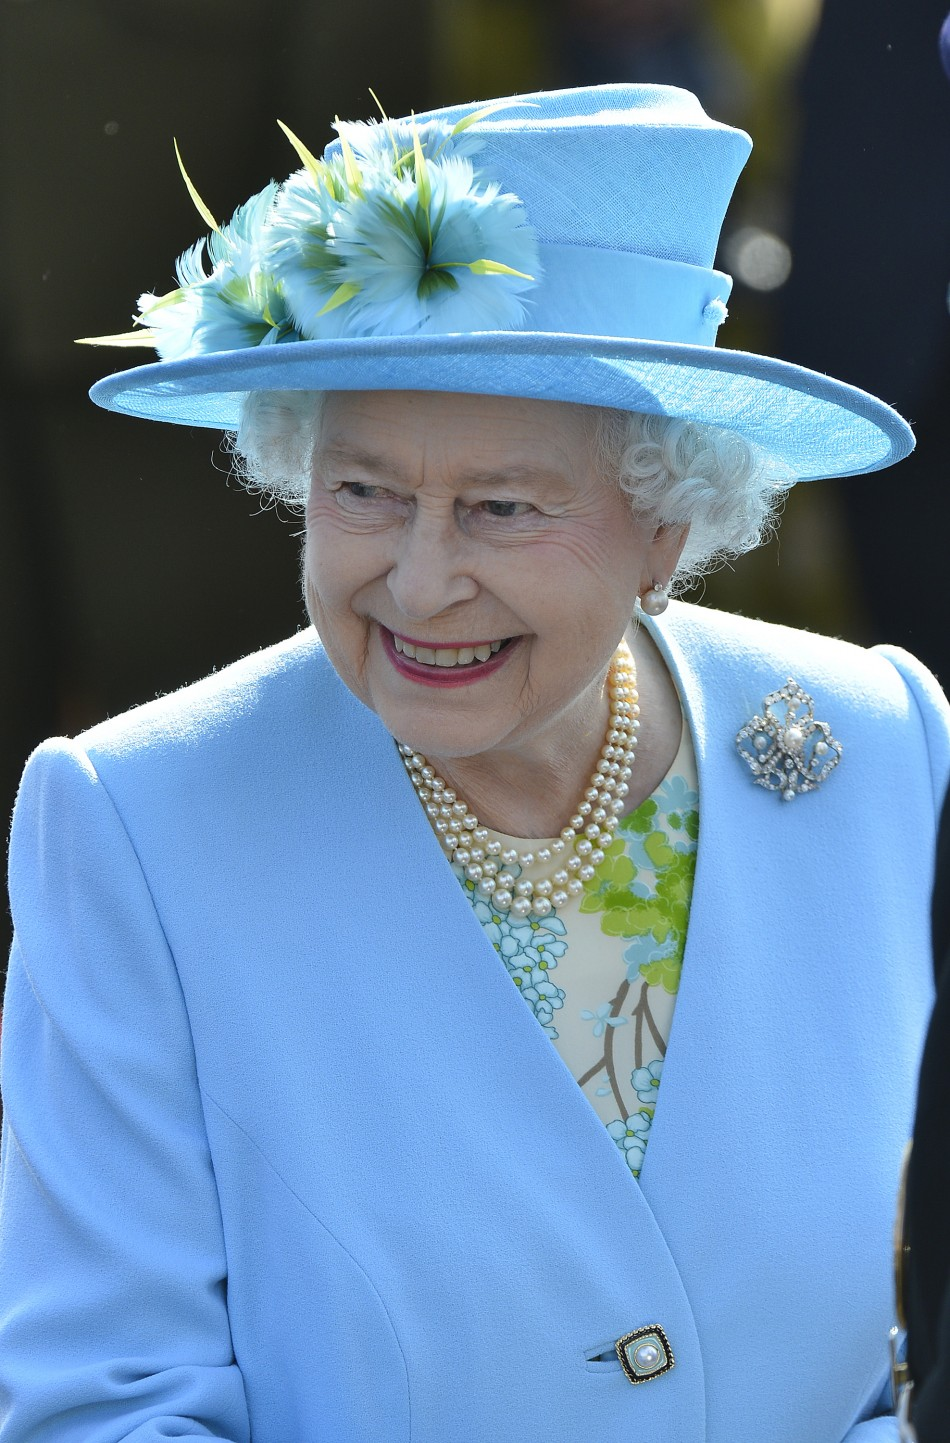 Diamond Jubilee celebrations of Queen Elizabeth II